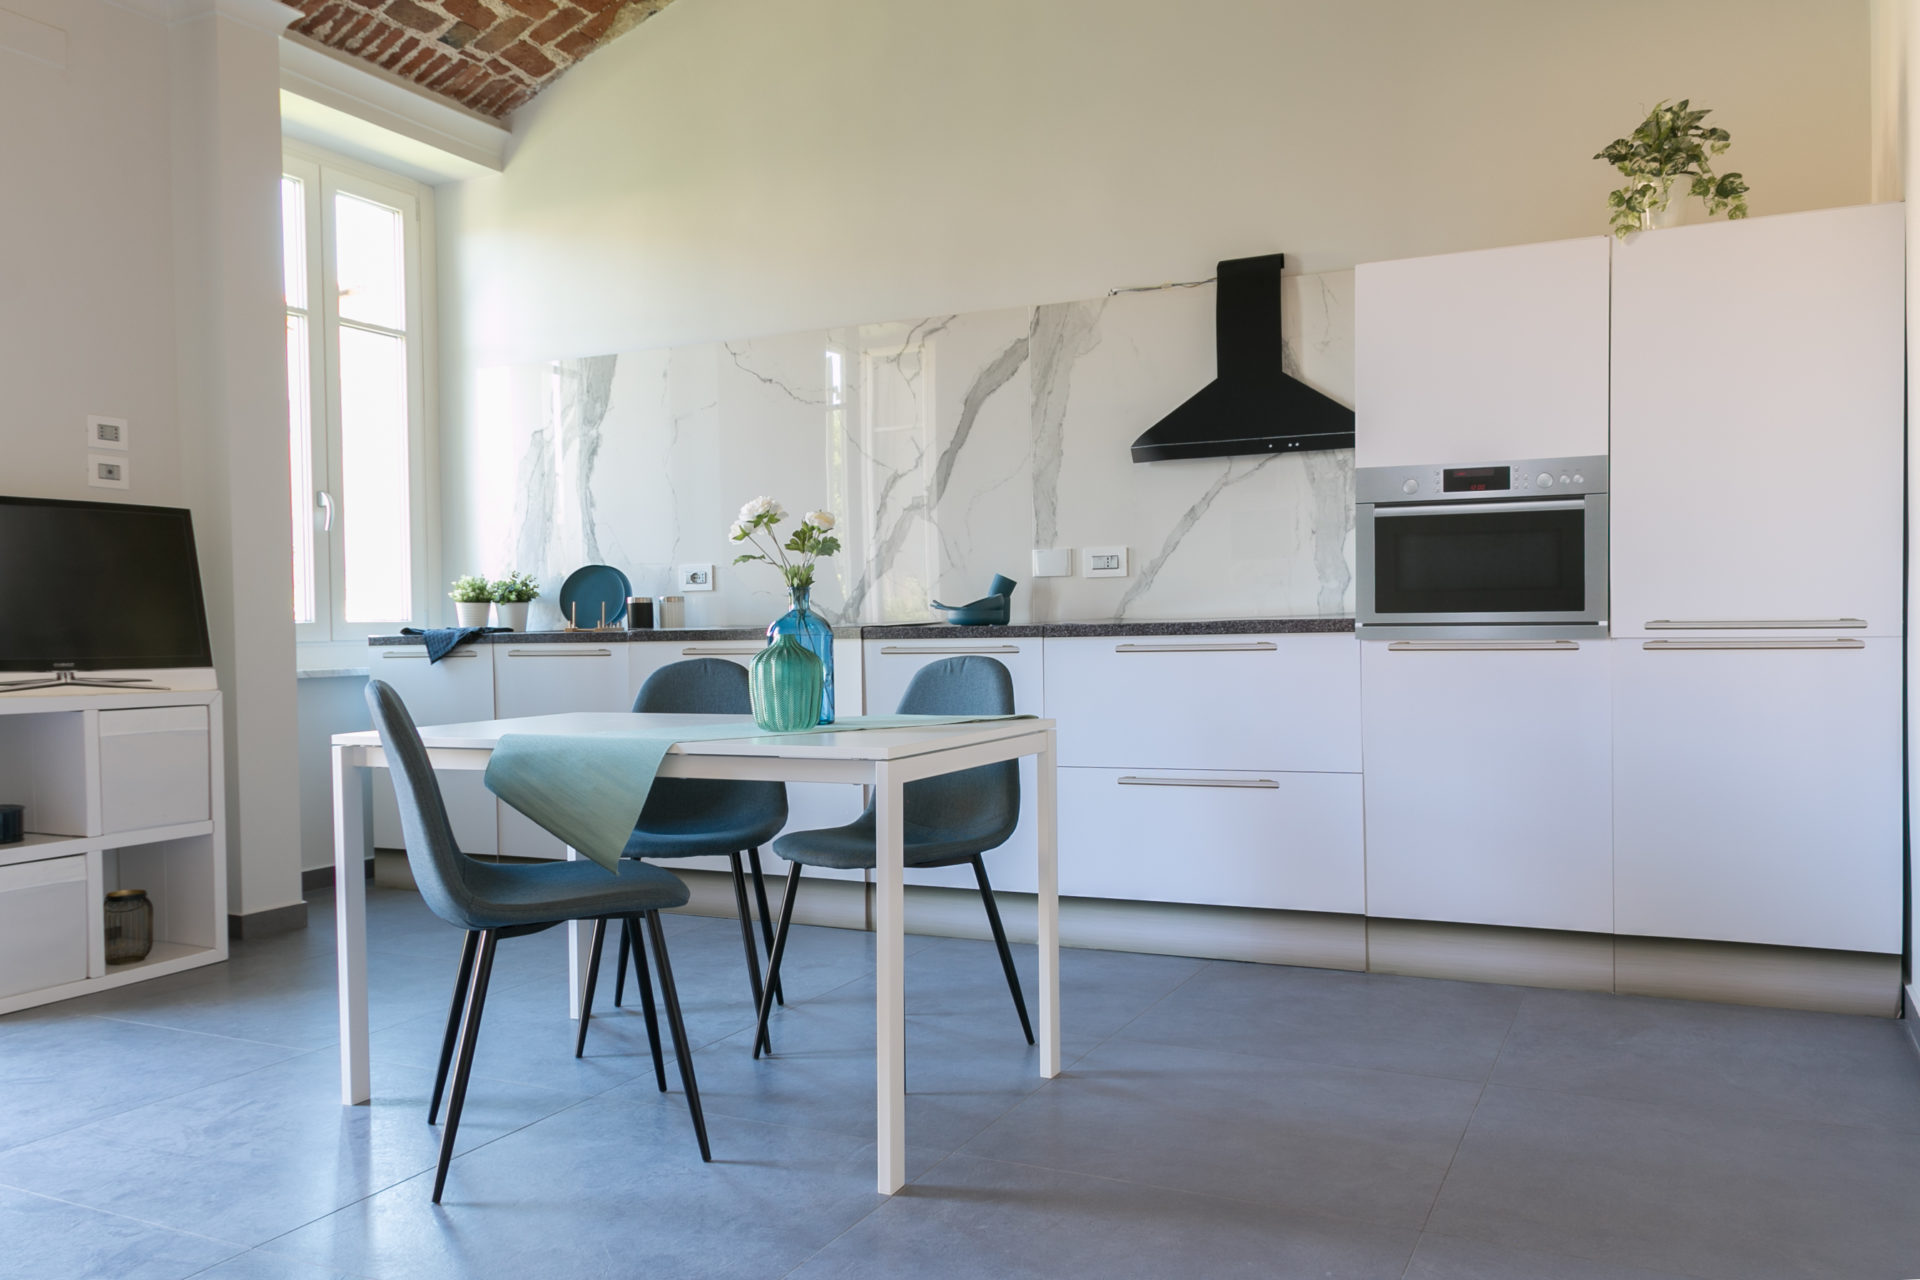 homeonstage-home-staging-casa-frejus_03